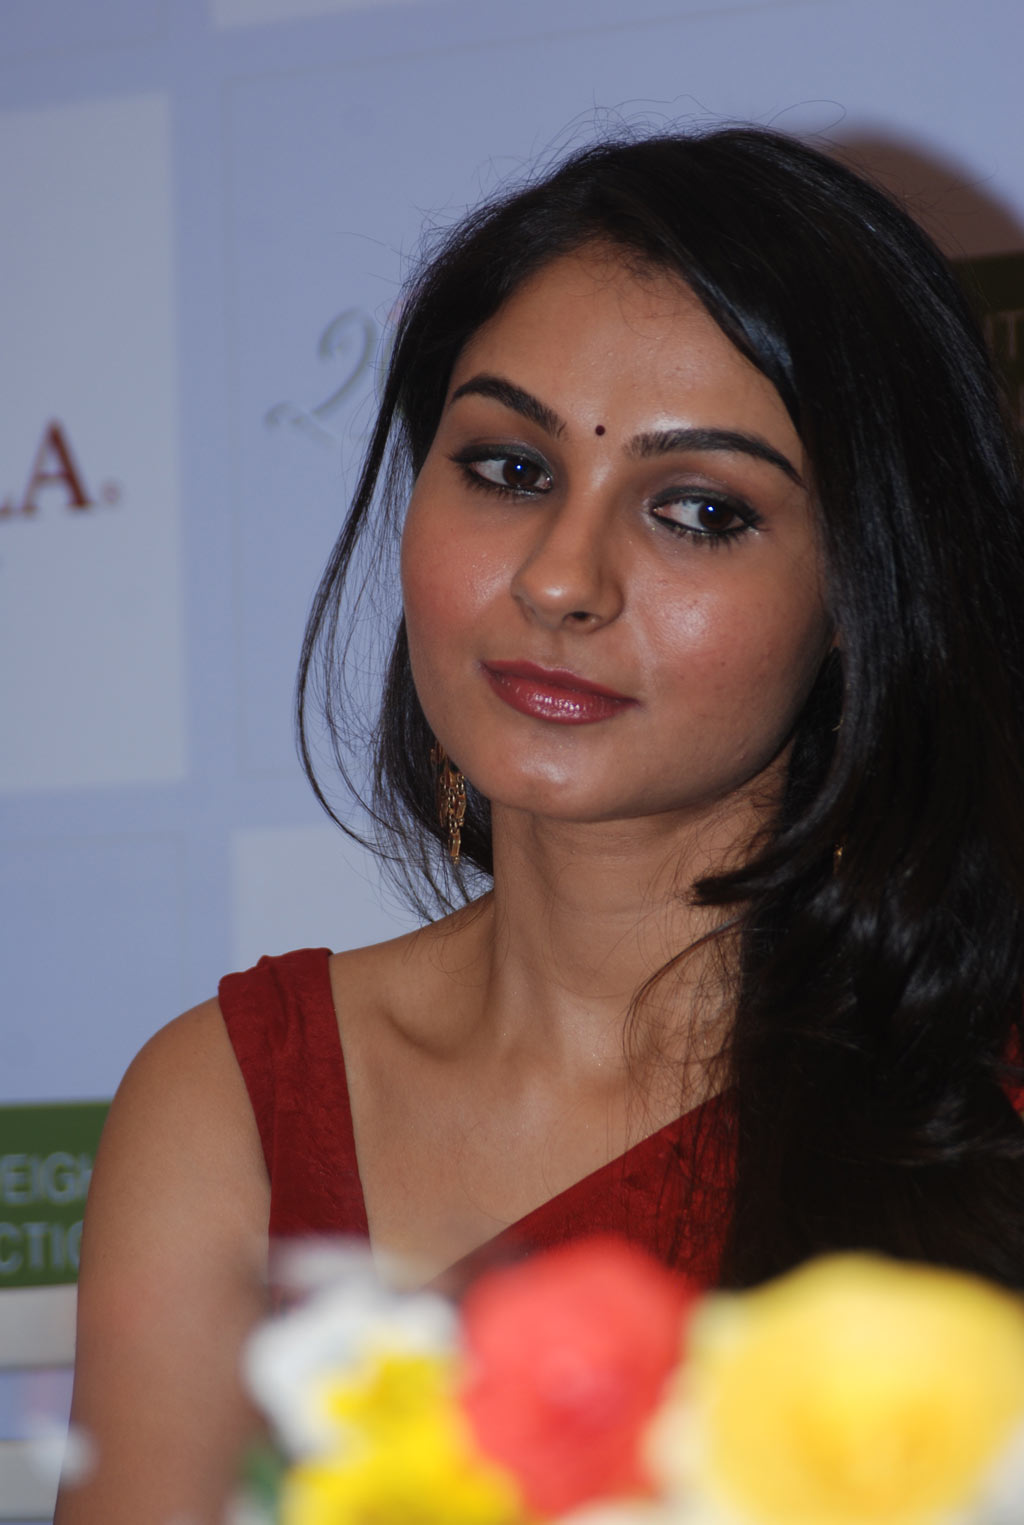 Andrea For Genesis Young Teen Julie: Andrea Jeremiah Latest Posters, Andrea Jeremiah Latest